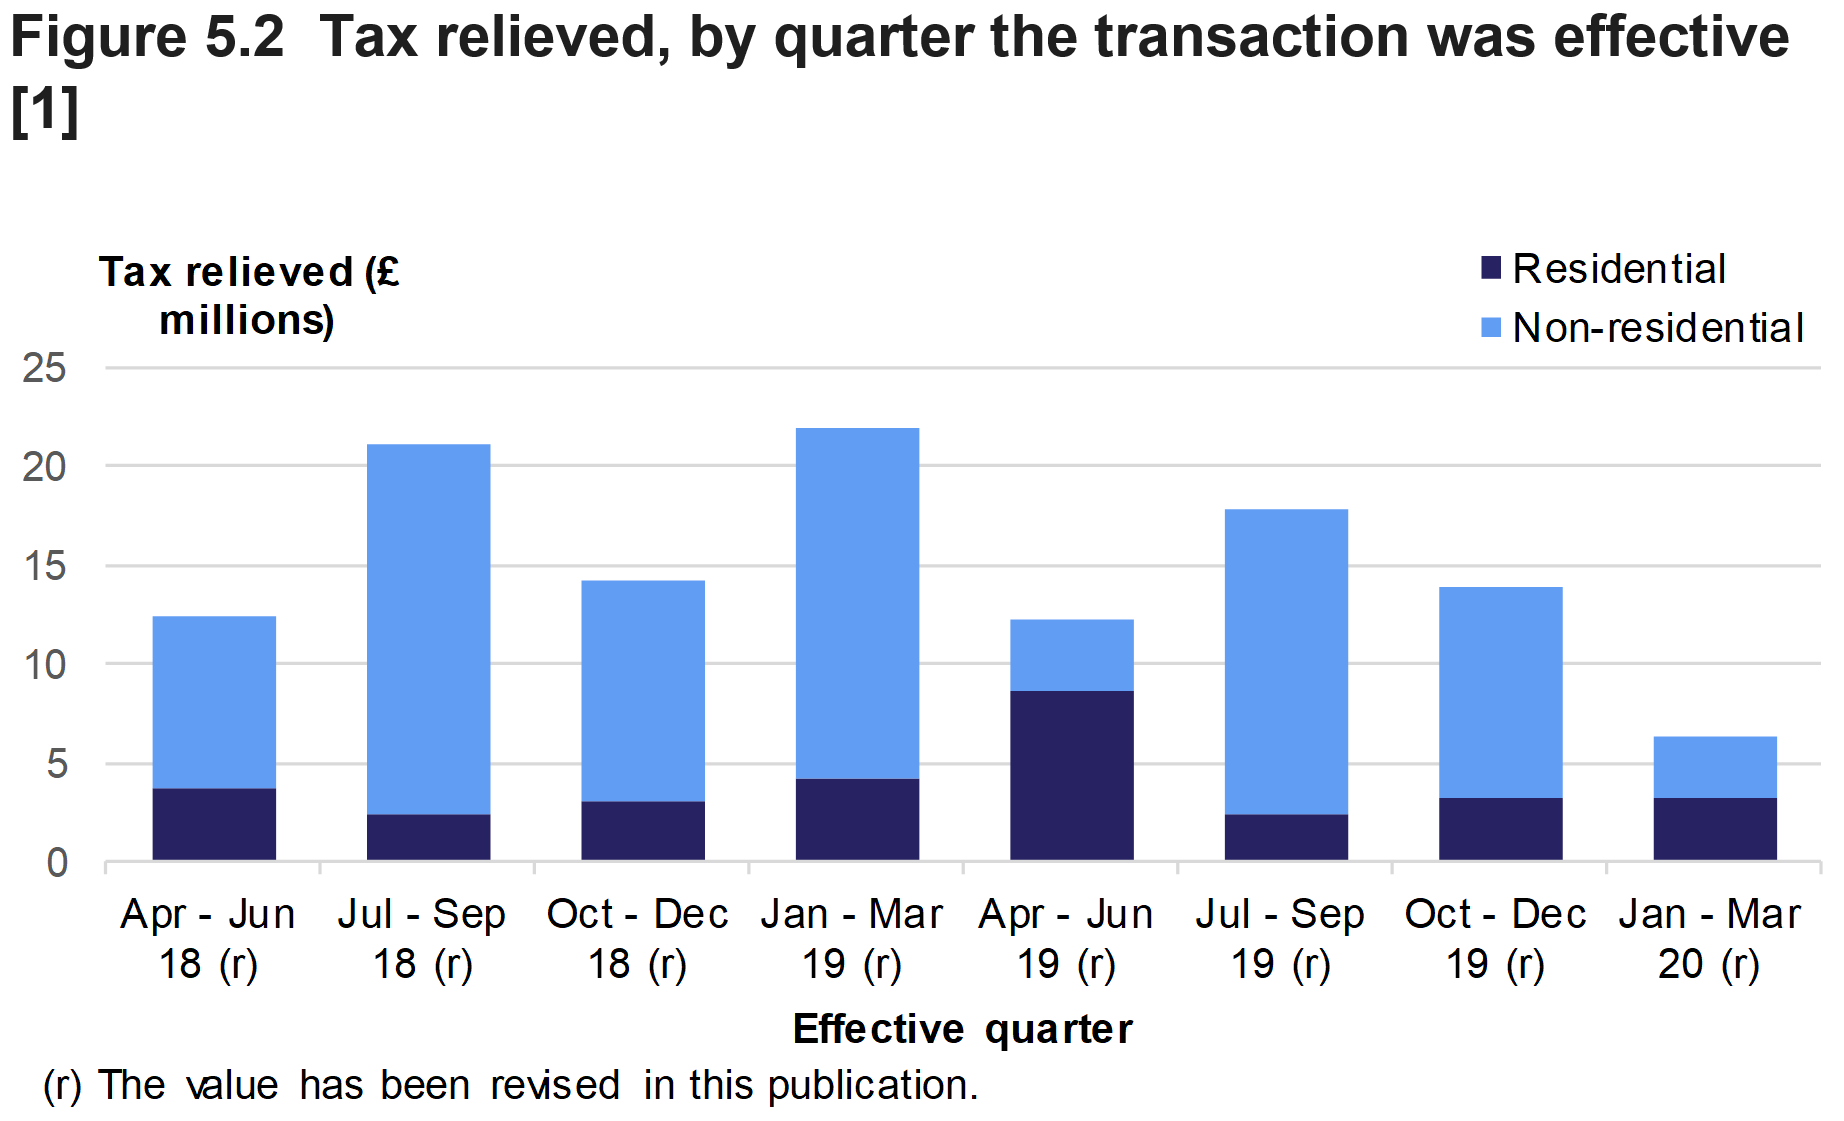 Figure 5.2 shows the amount of tax relieved on residential and non-residential transactions effective, by type of relief and quarter the transaction was effective.